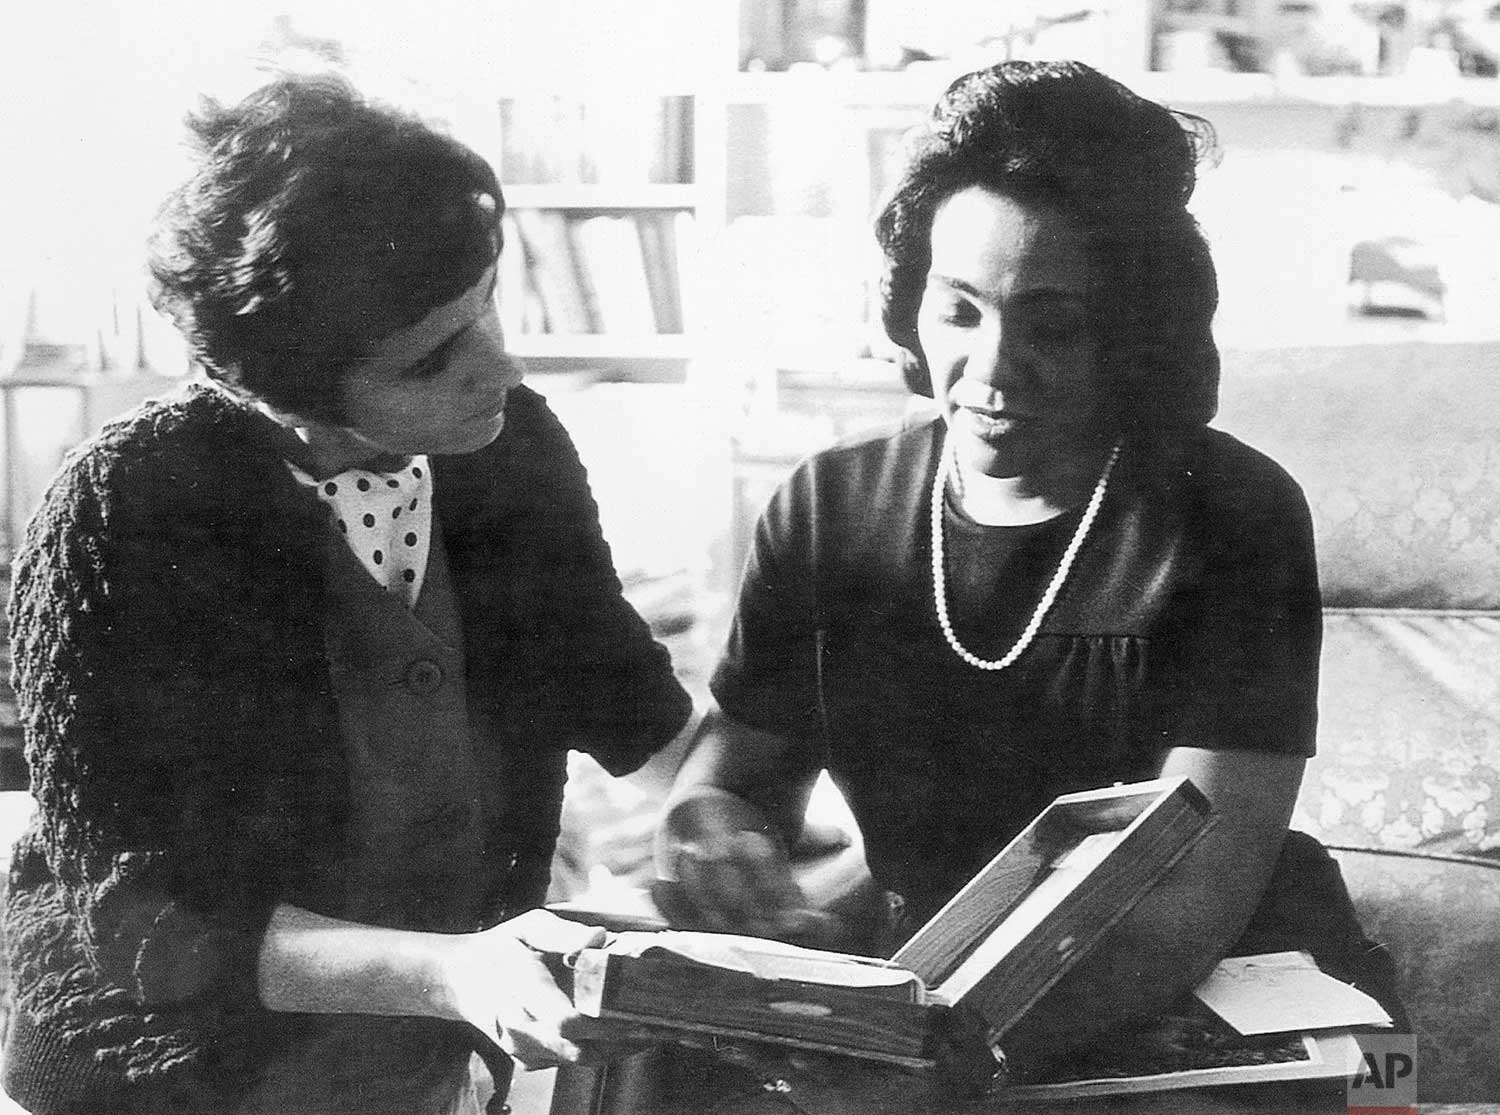 """In this 1968 photo, Coretta Scott King and AP reporter Kathryn Johnson, left, review plans for The King Center during a meeting on the campus of Atlanta University in Atlanta. In a new memoir, """"My Life with the Kings: A Reporter's Recollections of Martin, Coretta and the Civil Rights Movement,"""" retired Associated Press reporter Kathryn Johnson describes many civil rights flashpoints that she covered in the 1960s, and details her close relationship with the movement's leader, the Rev. Martin Luther King Jr., and his family. (AP Photo)"""